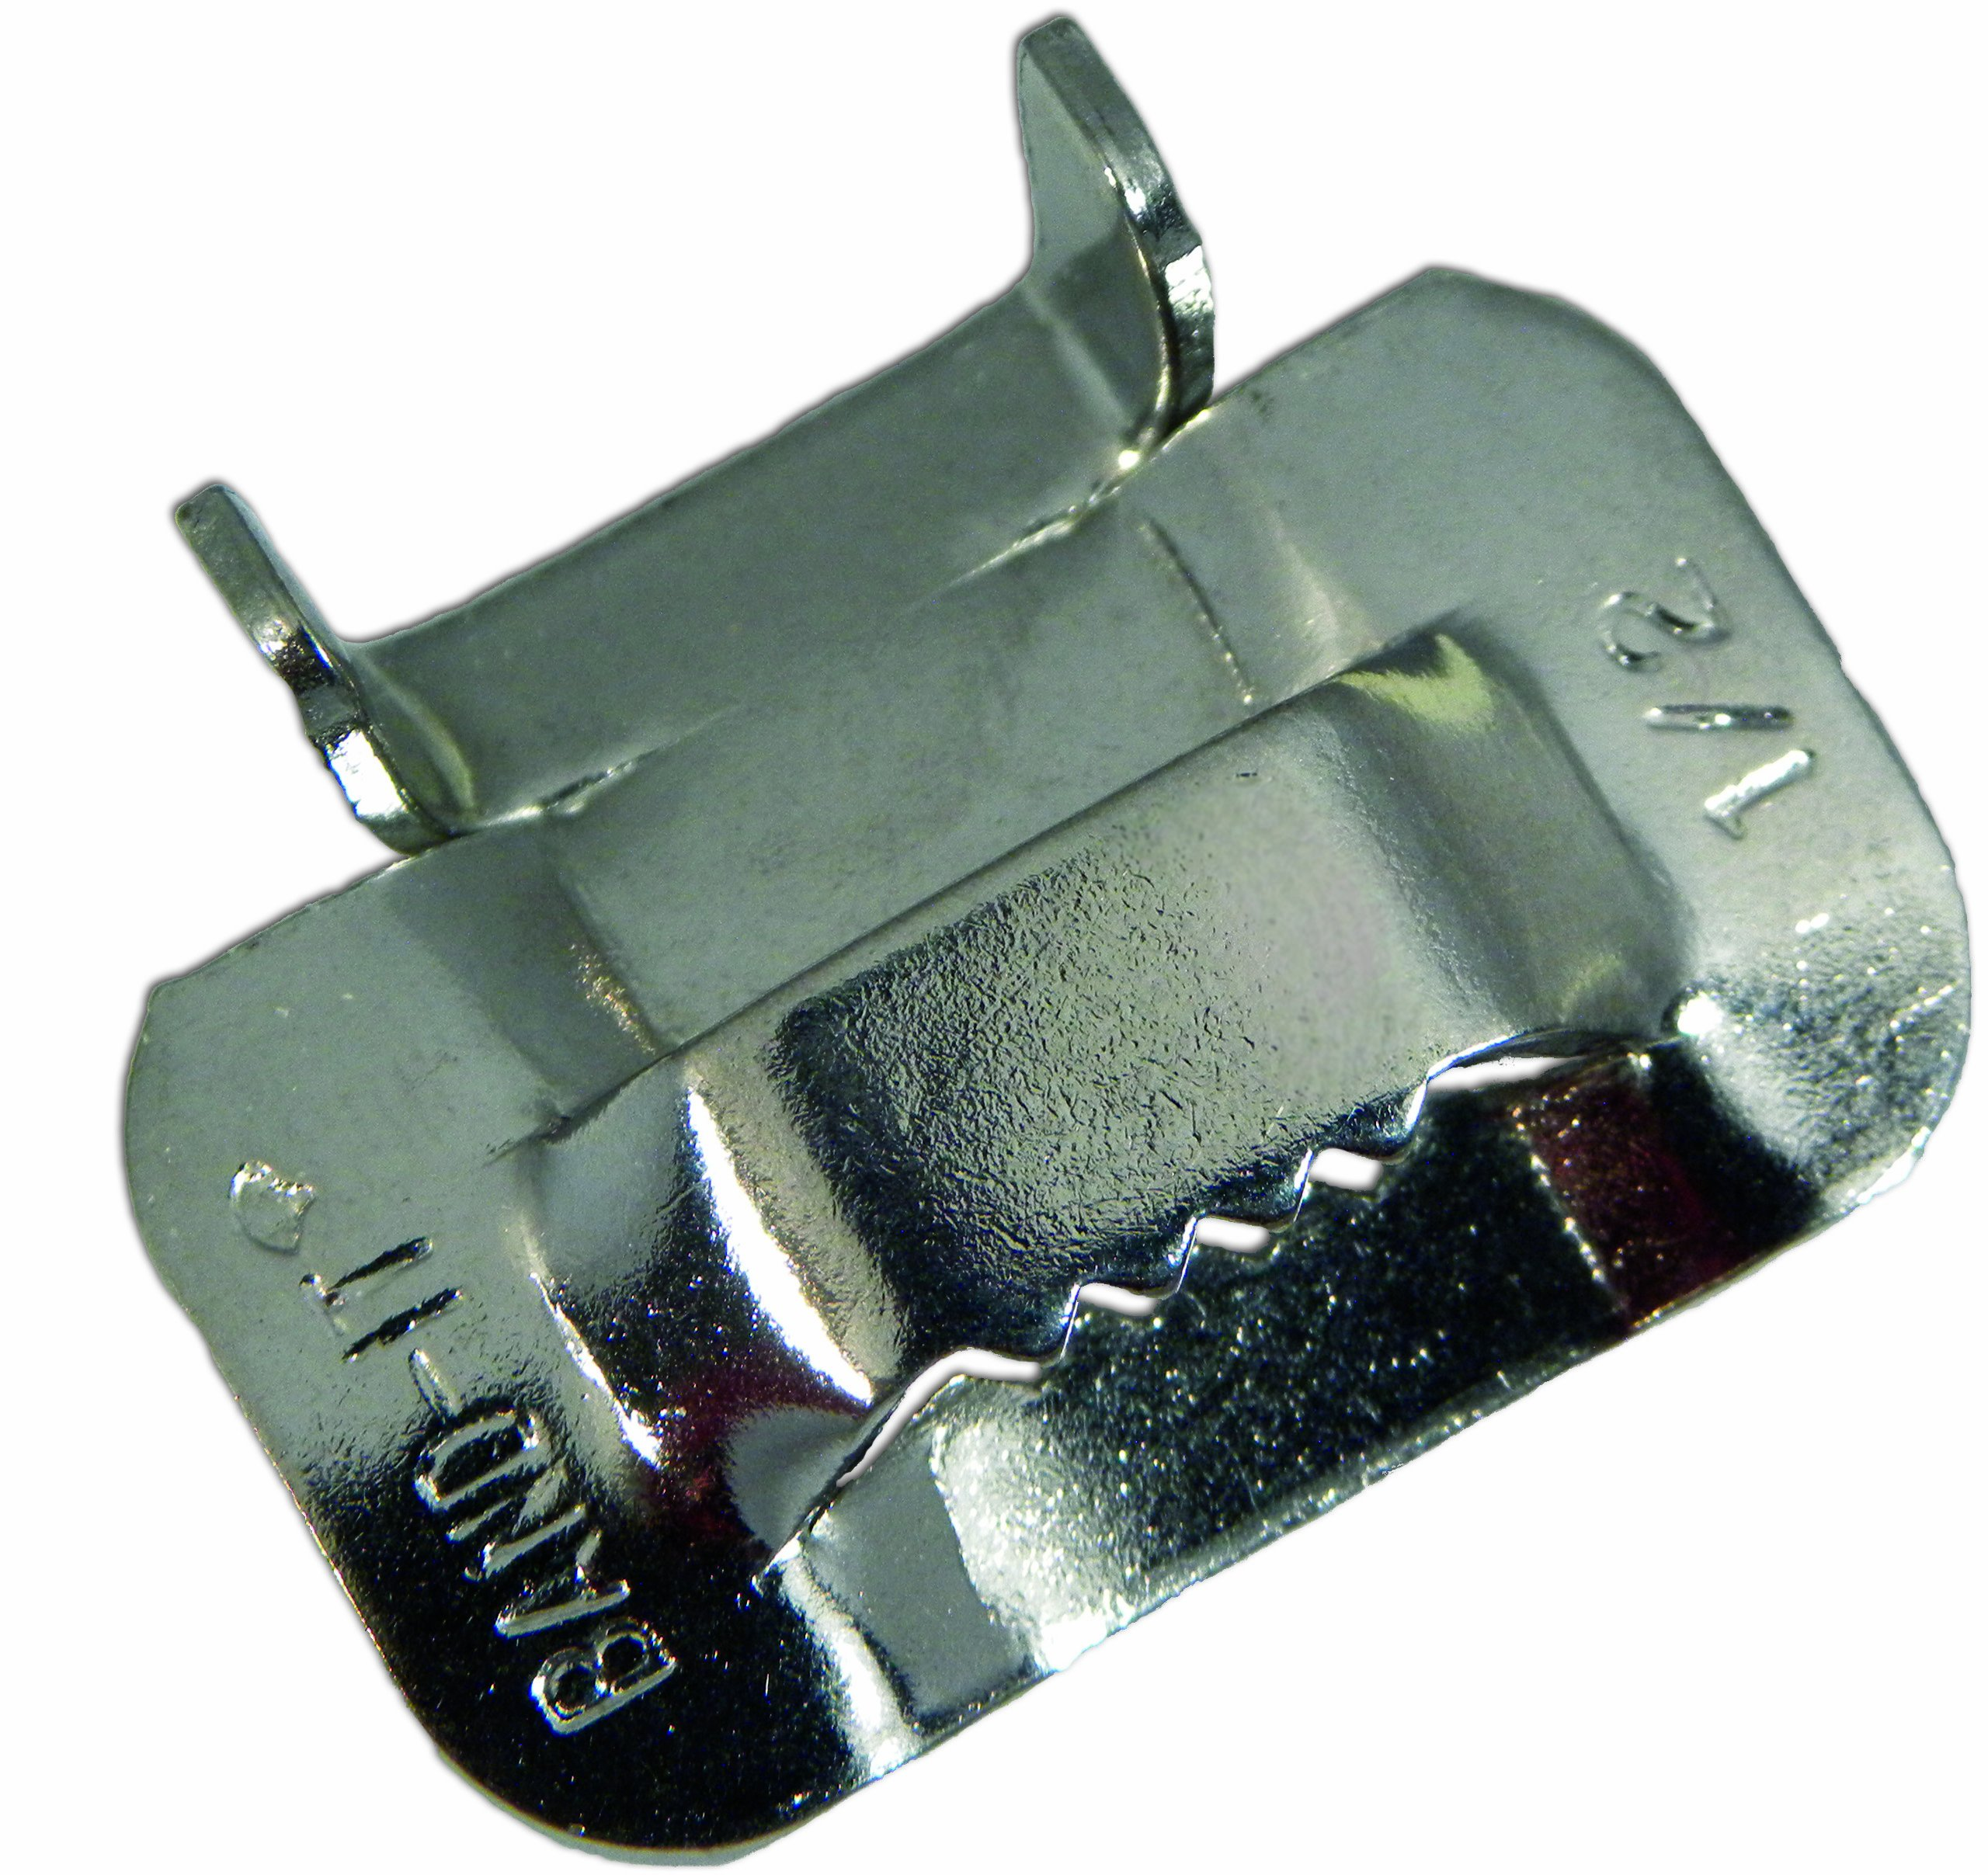 BAND-IT C25499 201/301 Stainless Steel Ear-Lokt Buckle, 1/2'' Width, 100 per Box